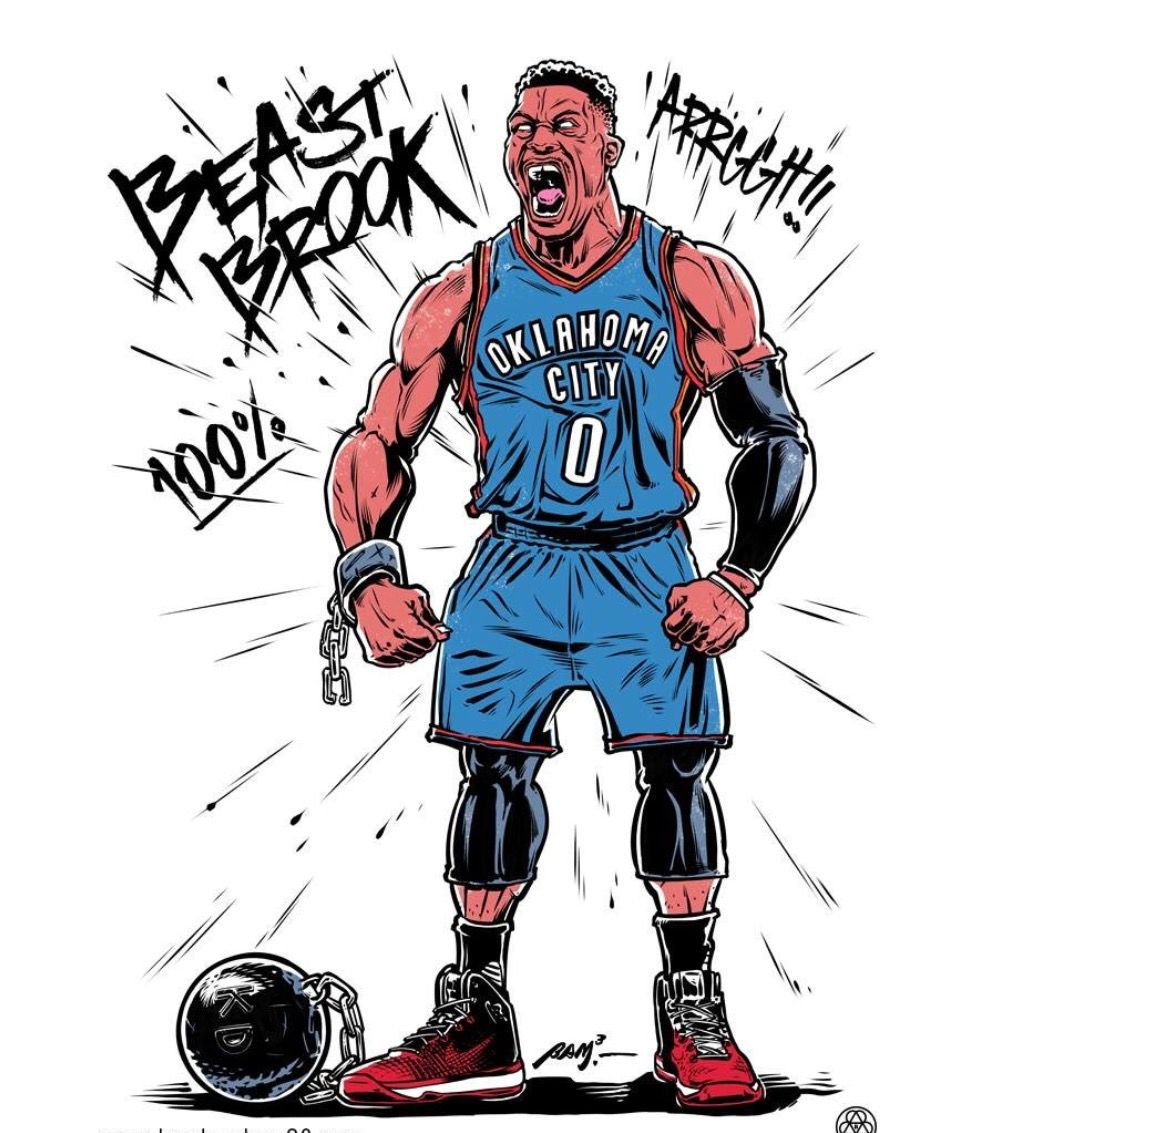 Pin by J.Breezy🏀 on Westbrook my fav player Pinterest